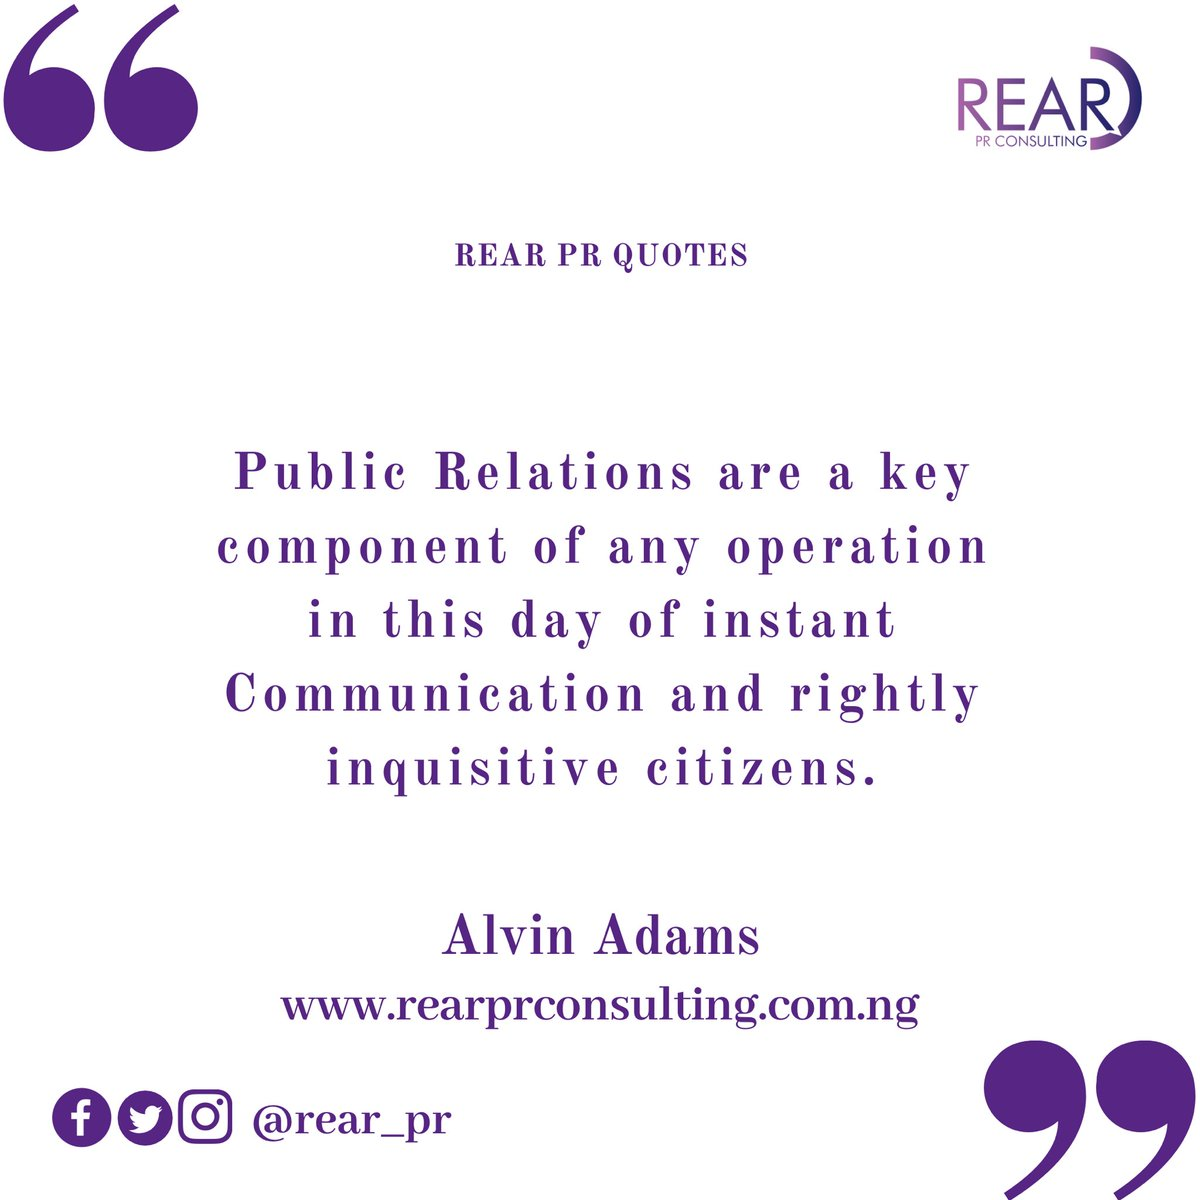 Having a strategic marketing mix in place would ensure a well-deserved brand reputation. #publicrelations #communication #reputationmanagement #brandstrategy #mondaythoughts